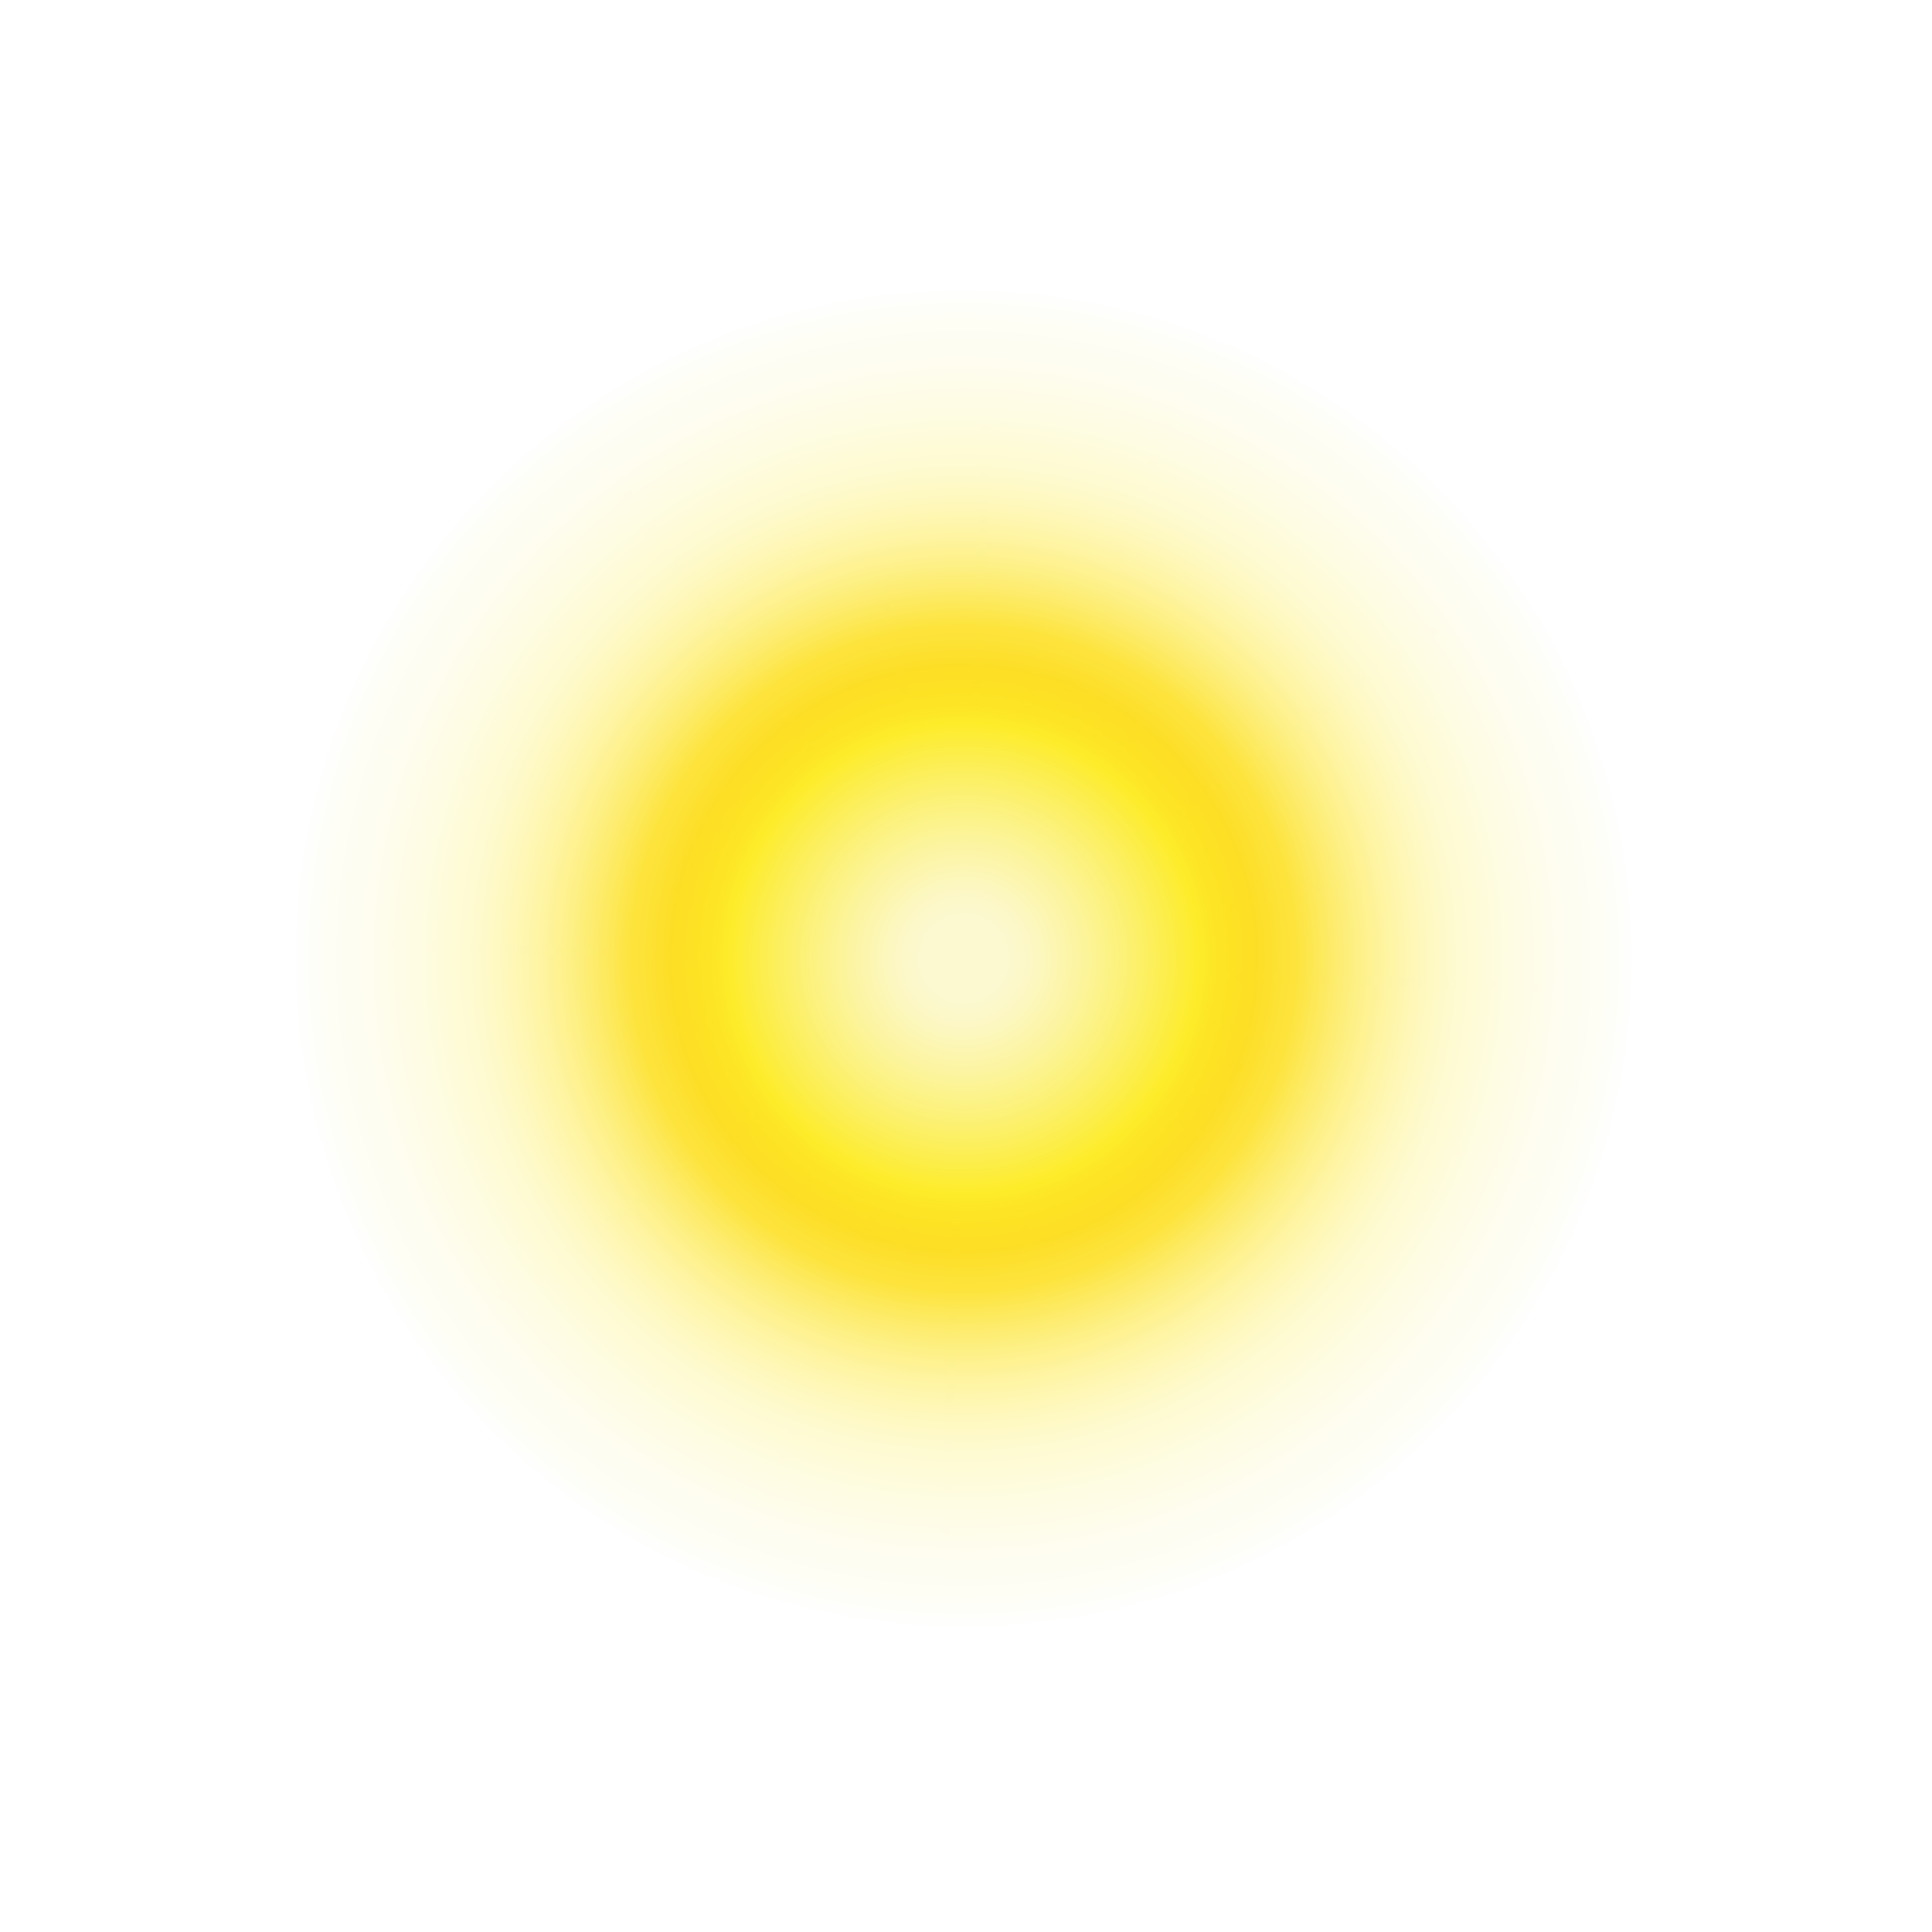 Png clip art image. Heaven clipart sun ray